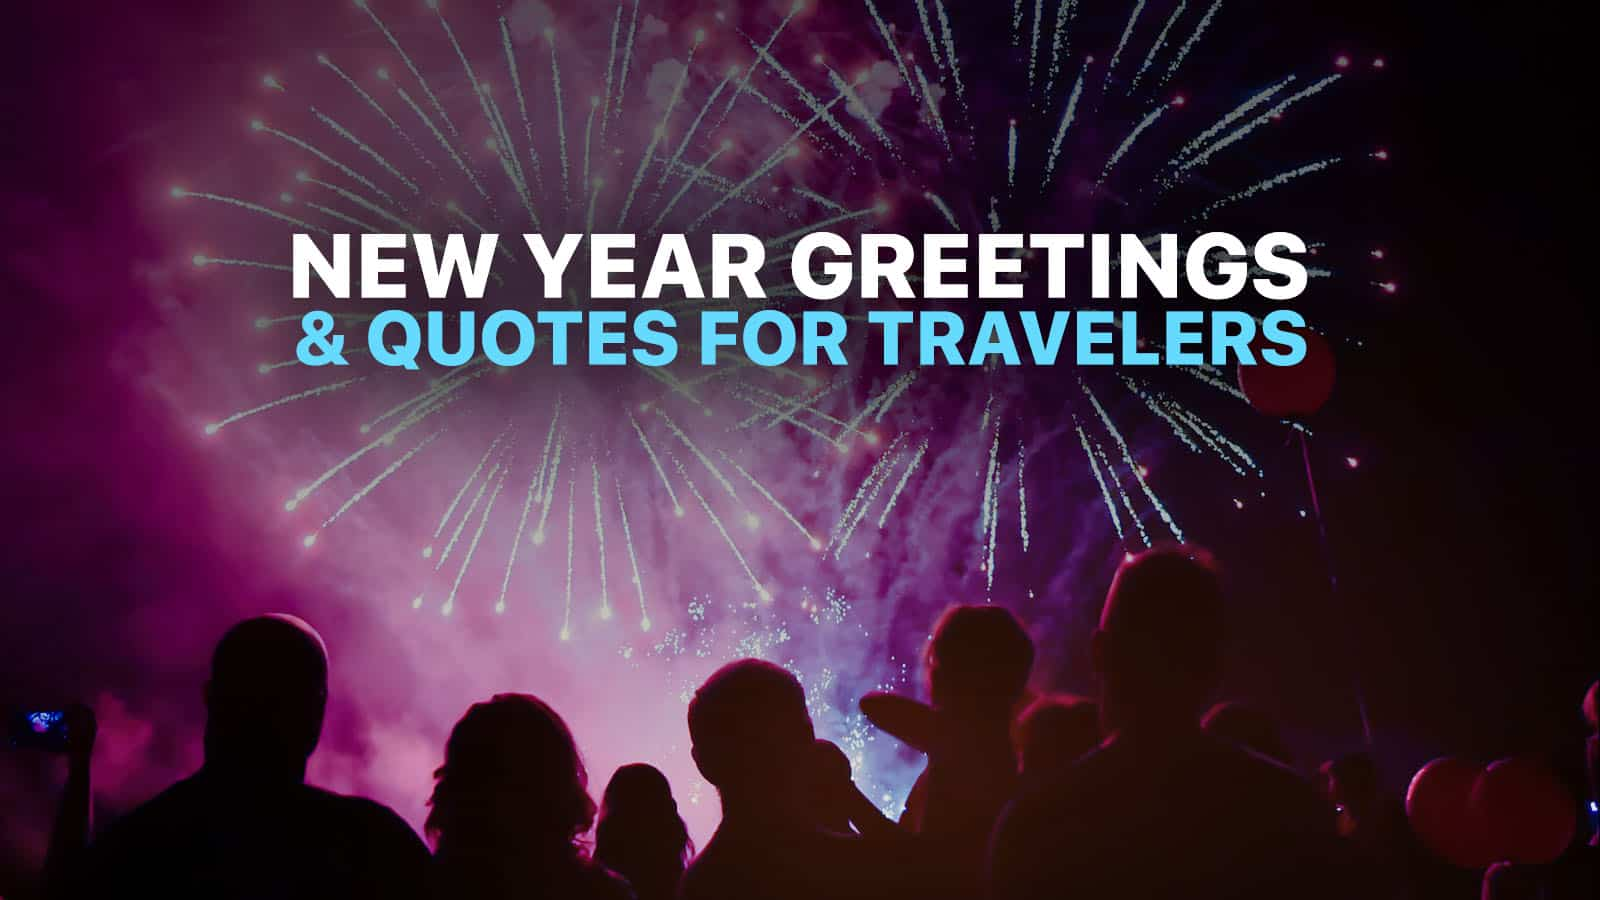 12 new year quotes and greetings for travelers the poor traveler 12 new year quotes and greetings for travelers the poor traveler itinerary blog m4hsunfo